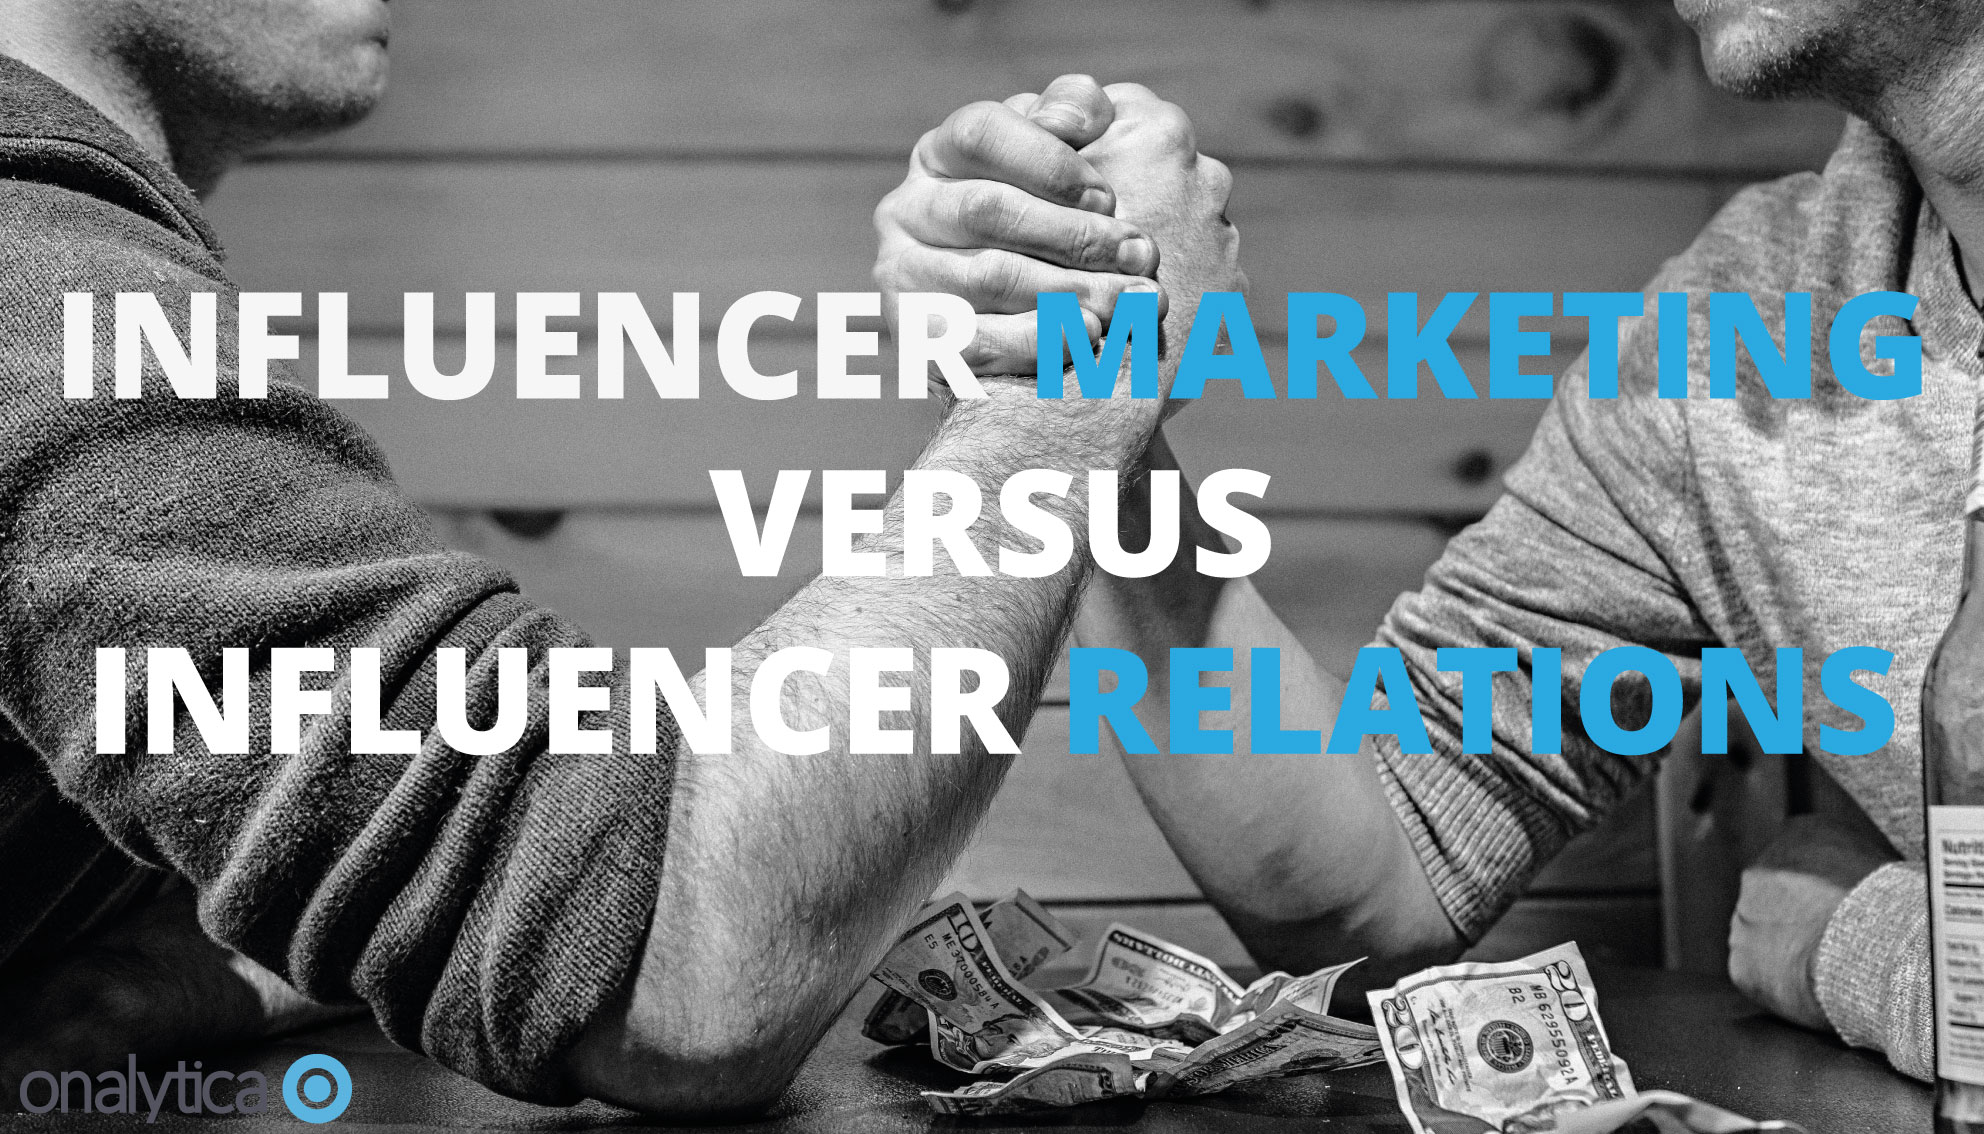 Onalytica Influencer Marketing Versus Influencer Relations What's the difference